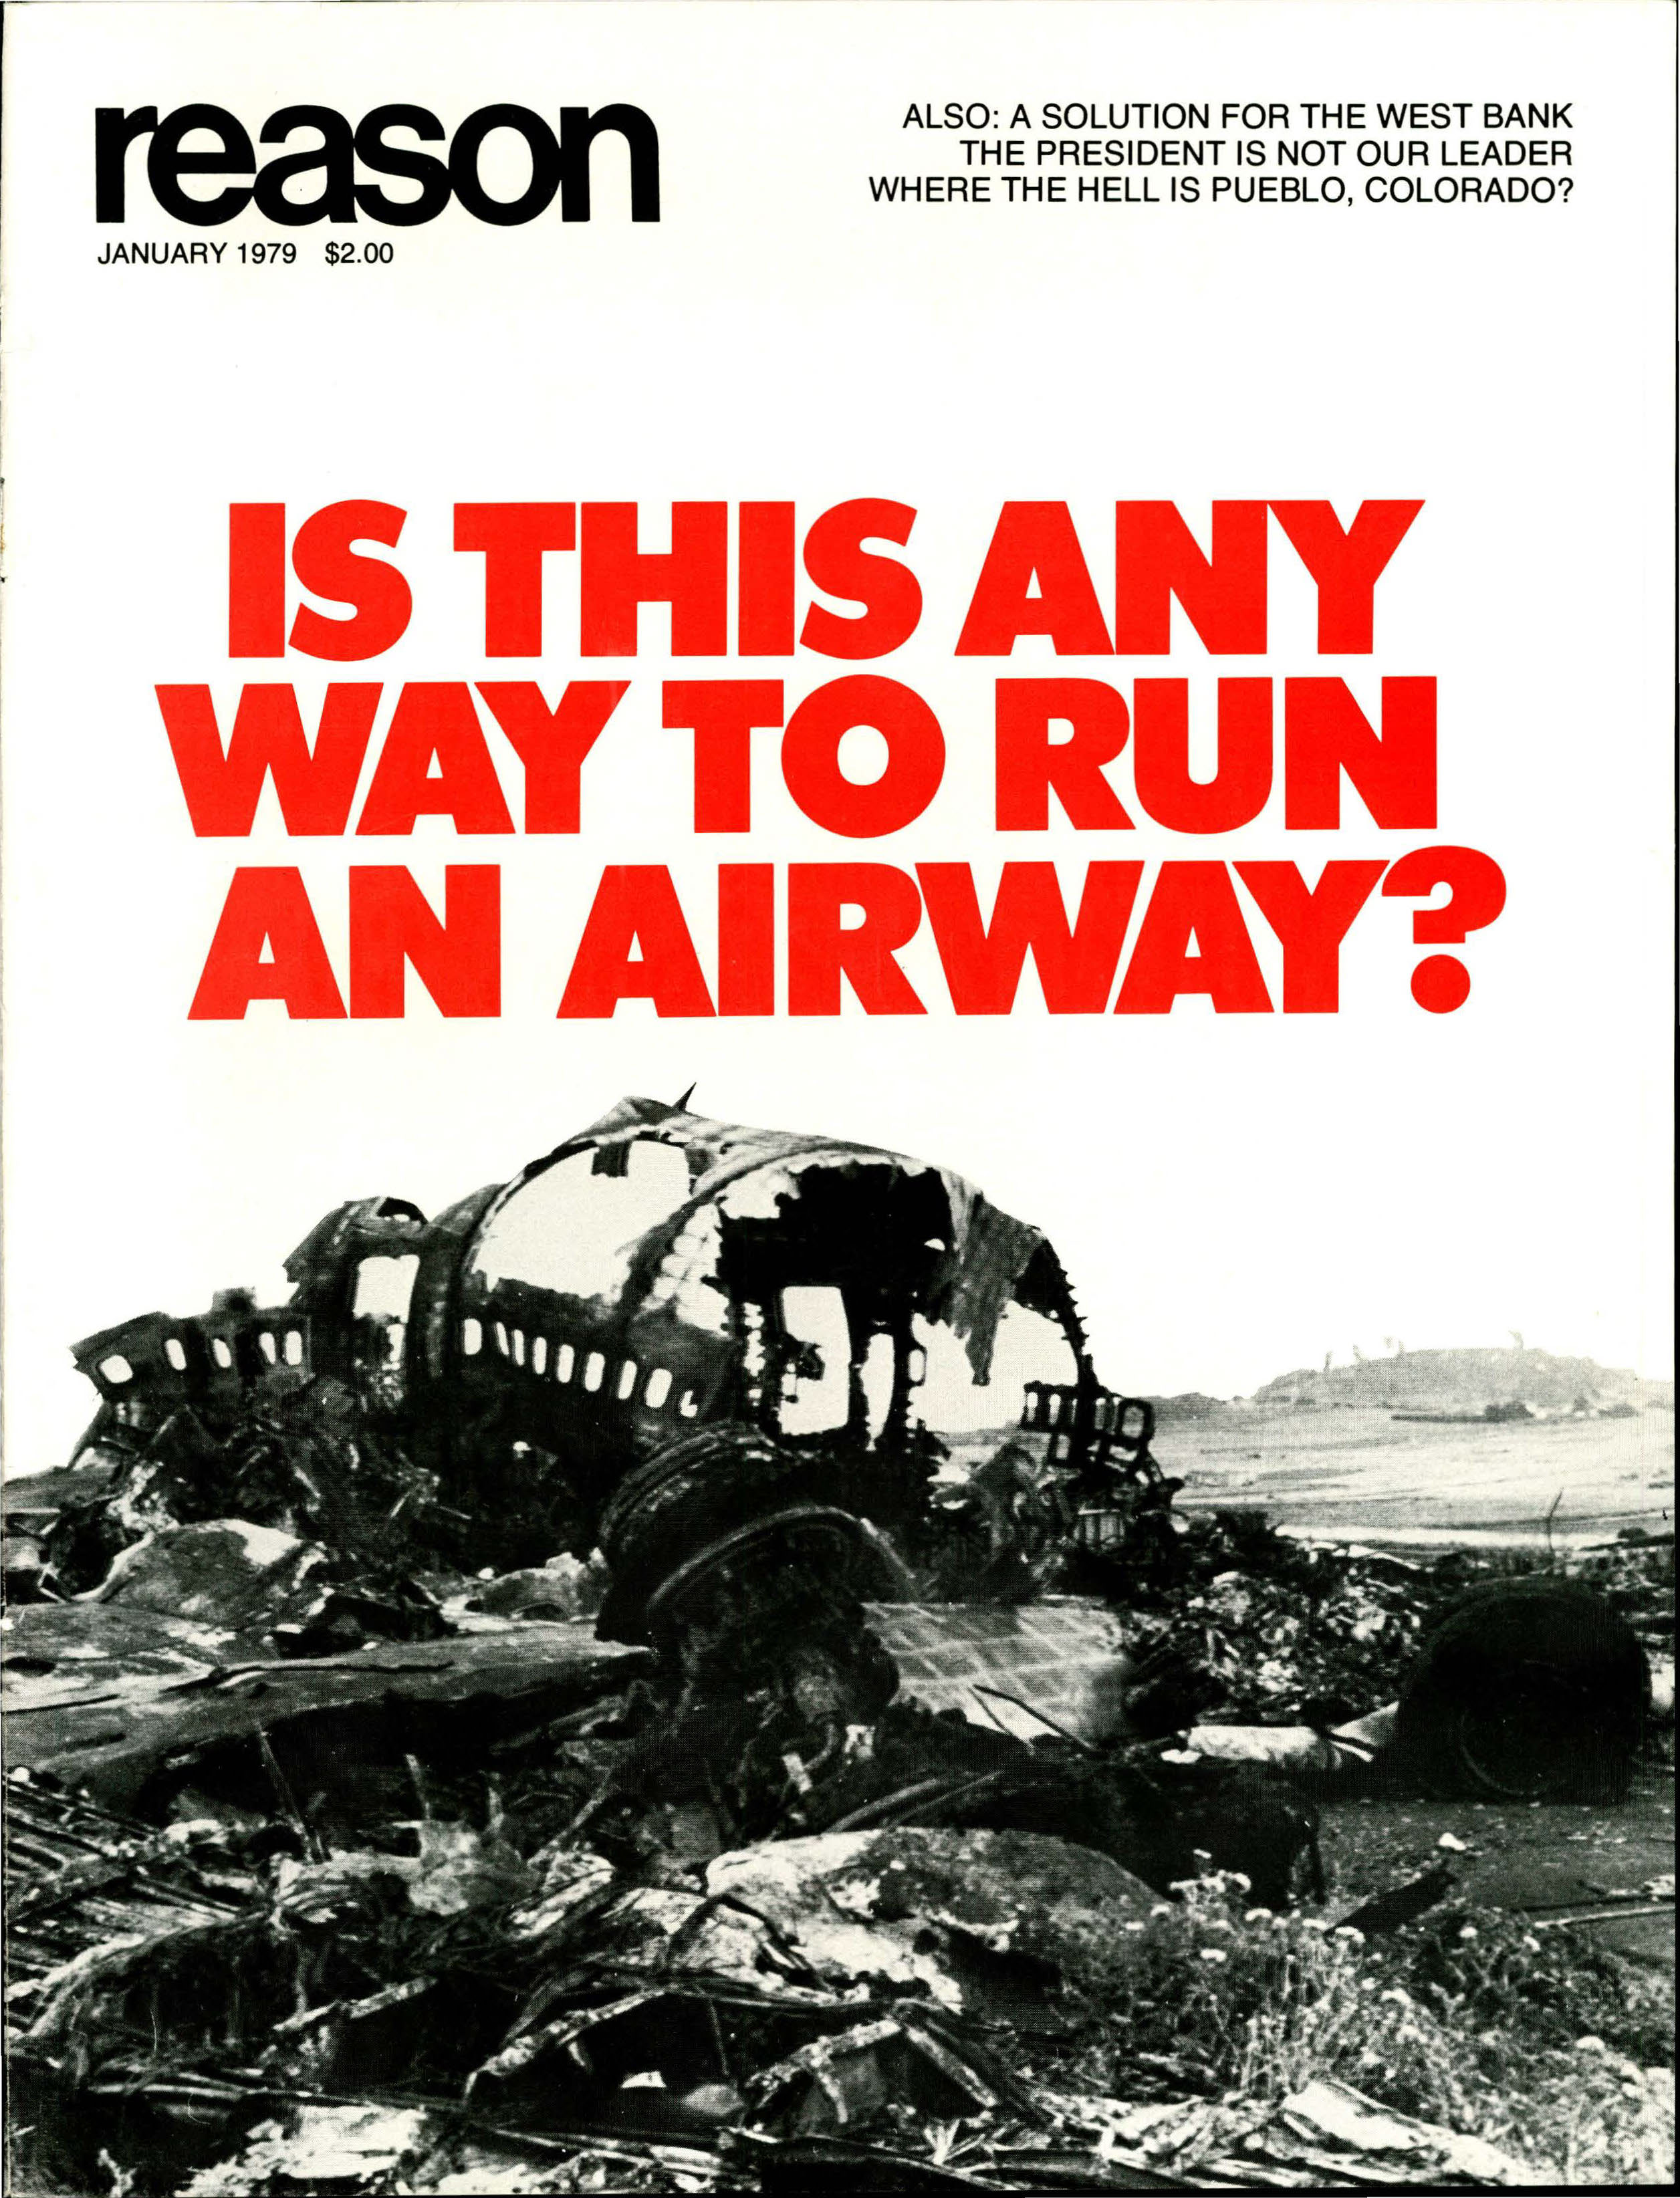 Reason Magazine, January 1979 cover image